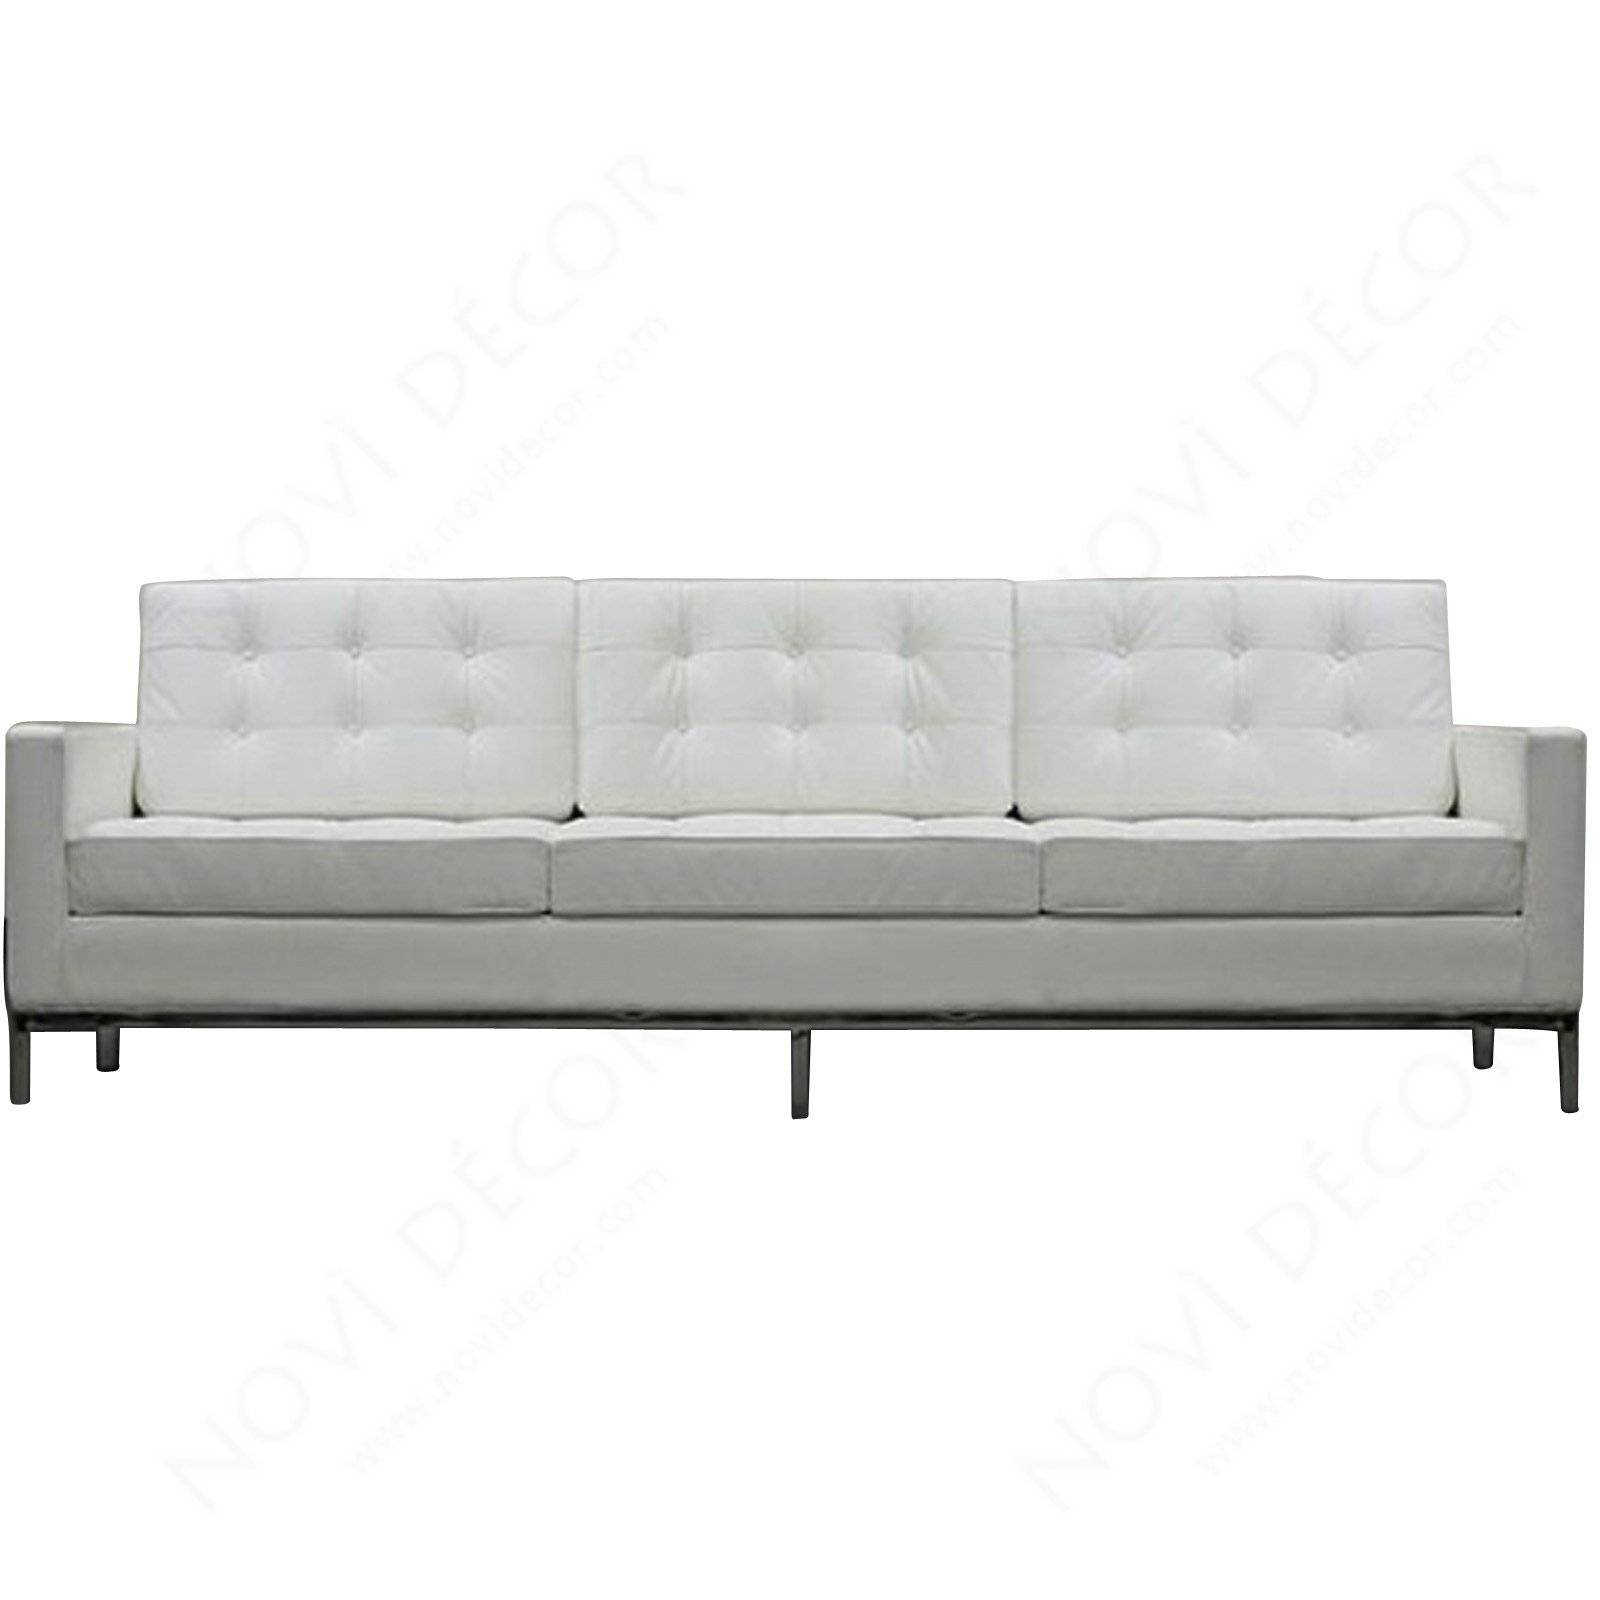 Florence Style Sofa (Multiple Colors) | Designer Reproduction regarding Florence Sofa Beds (Image 9 of 25)